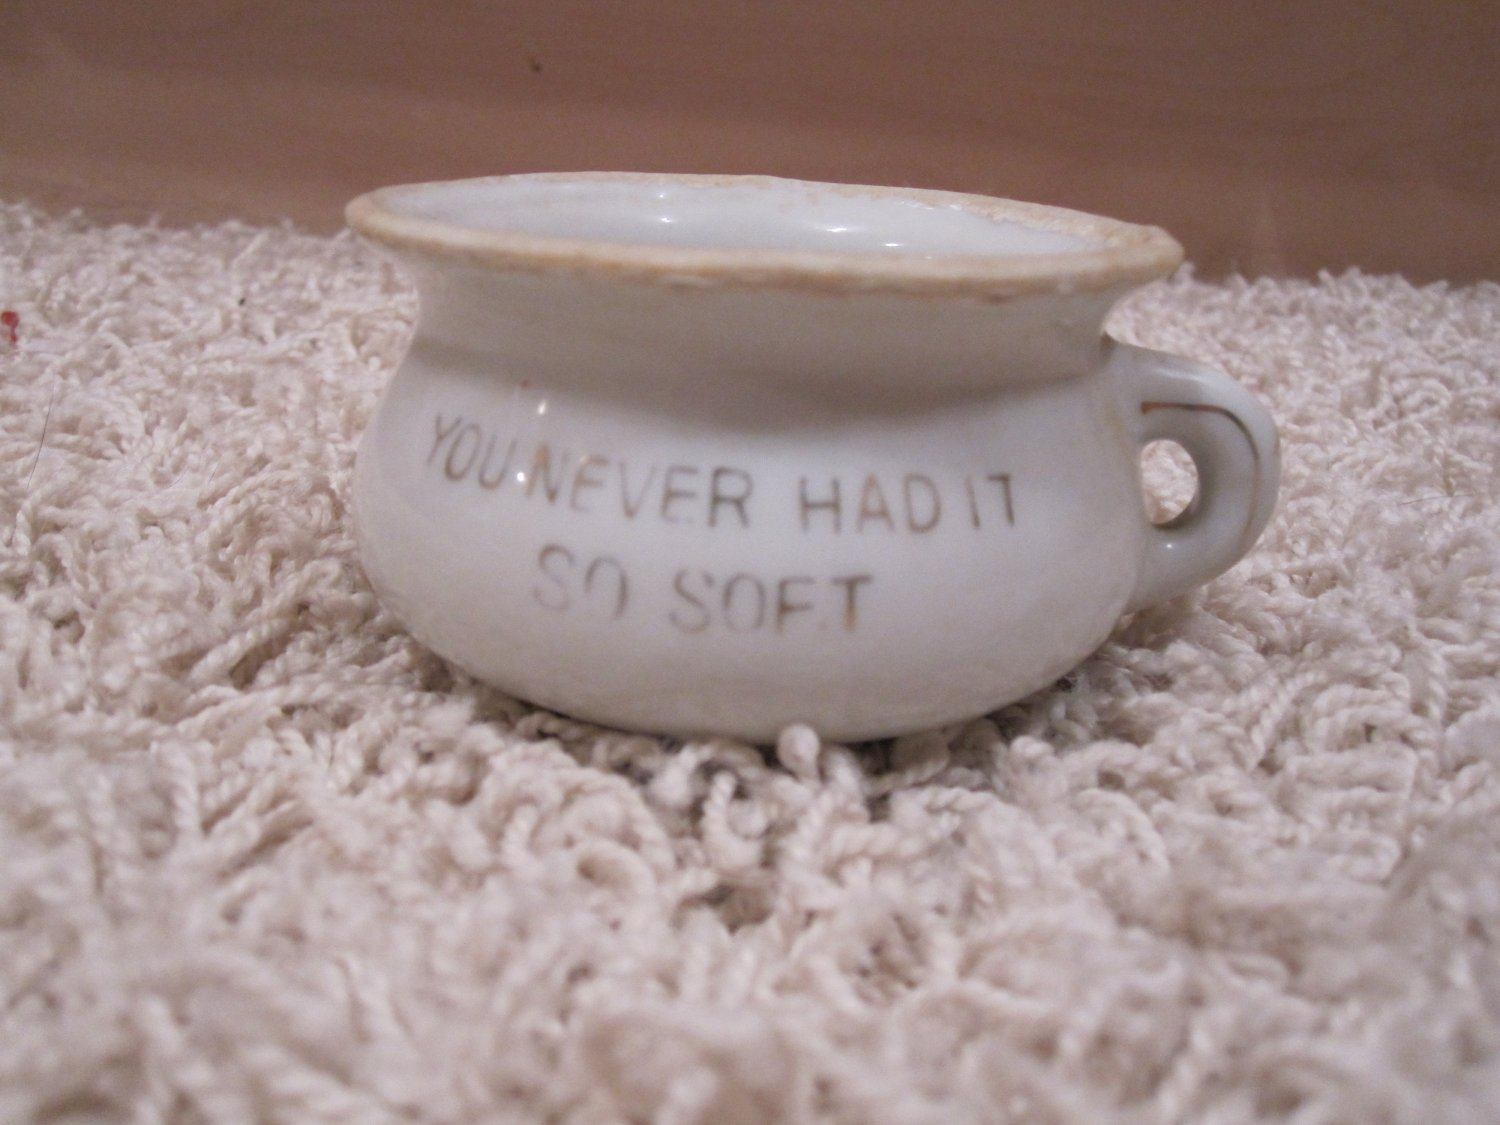 Vintage Chamber Pot Replica You Never Had It So Soft